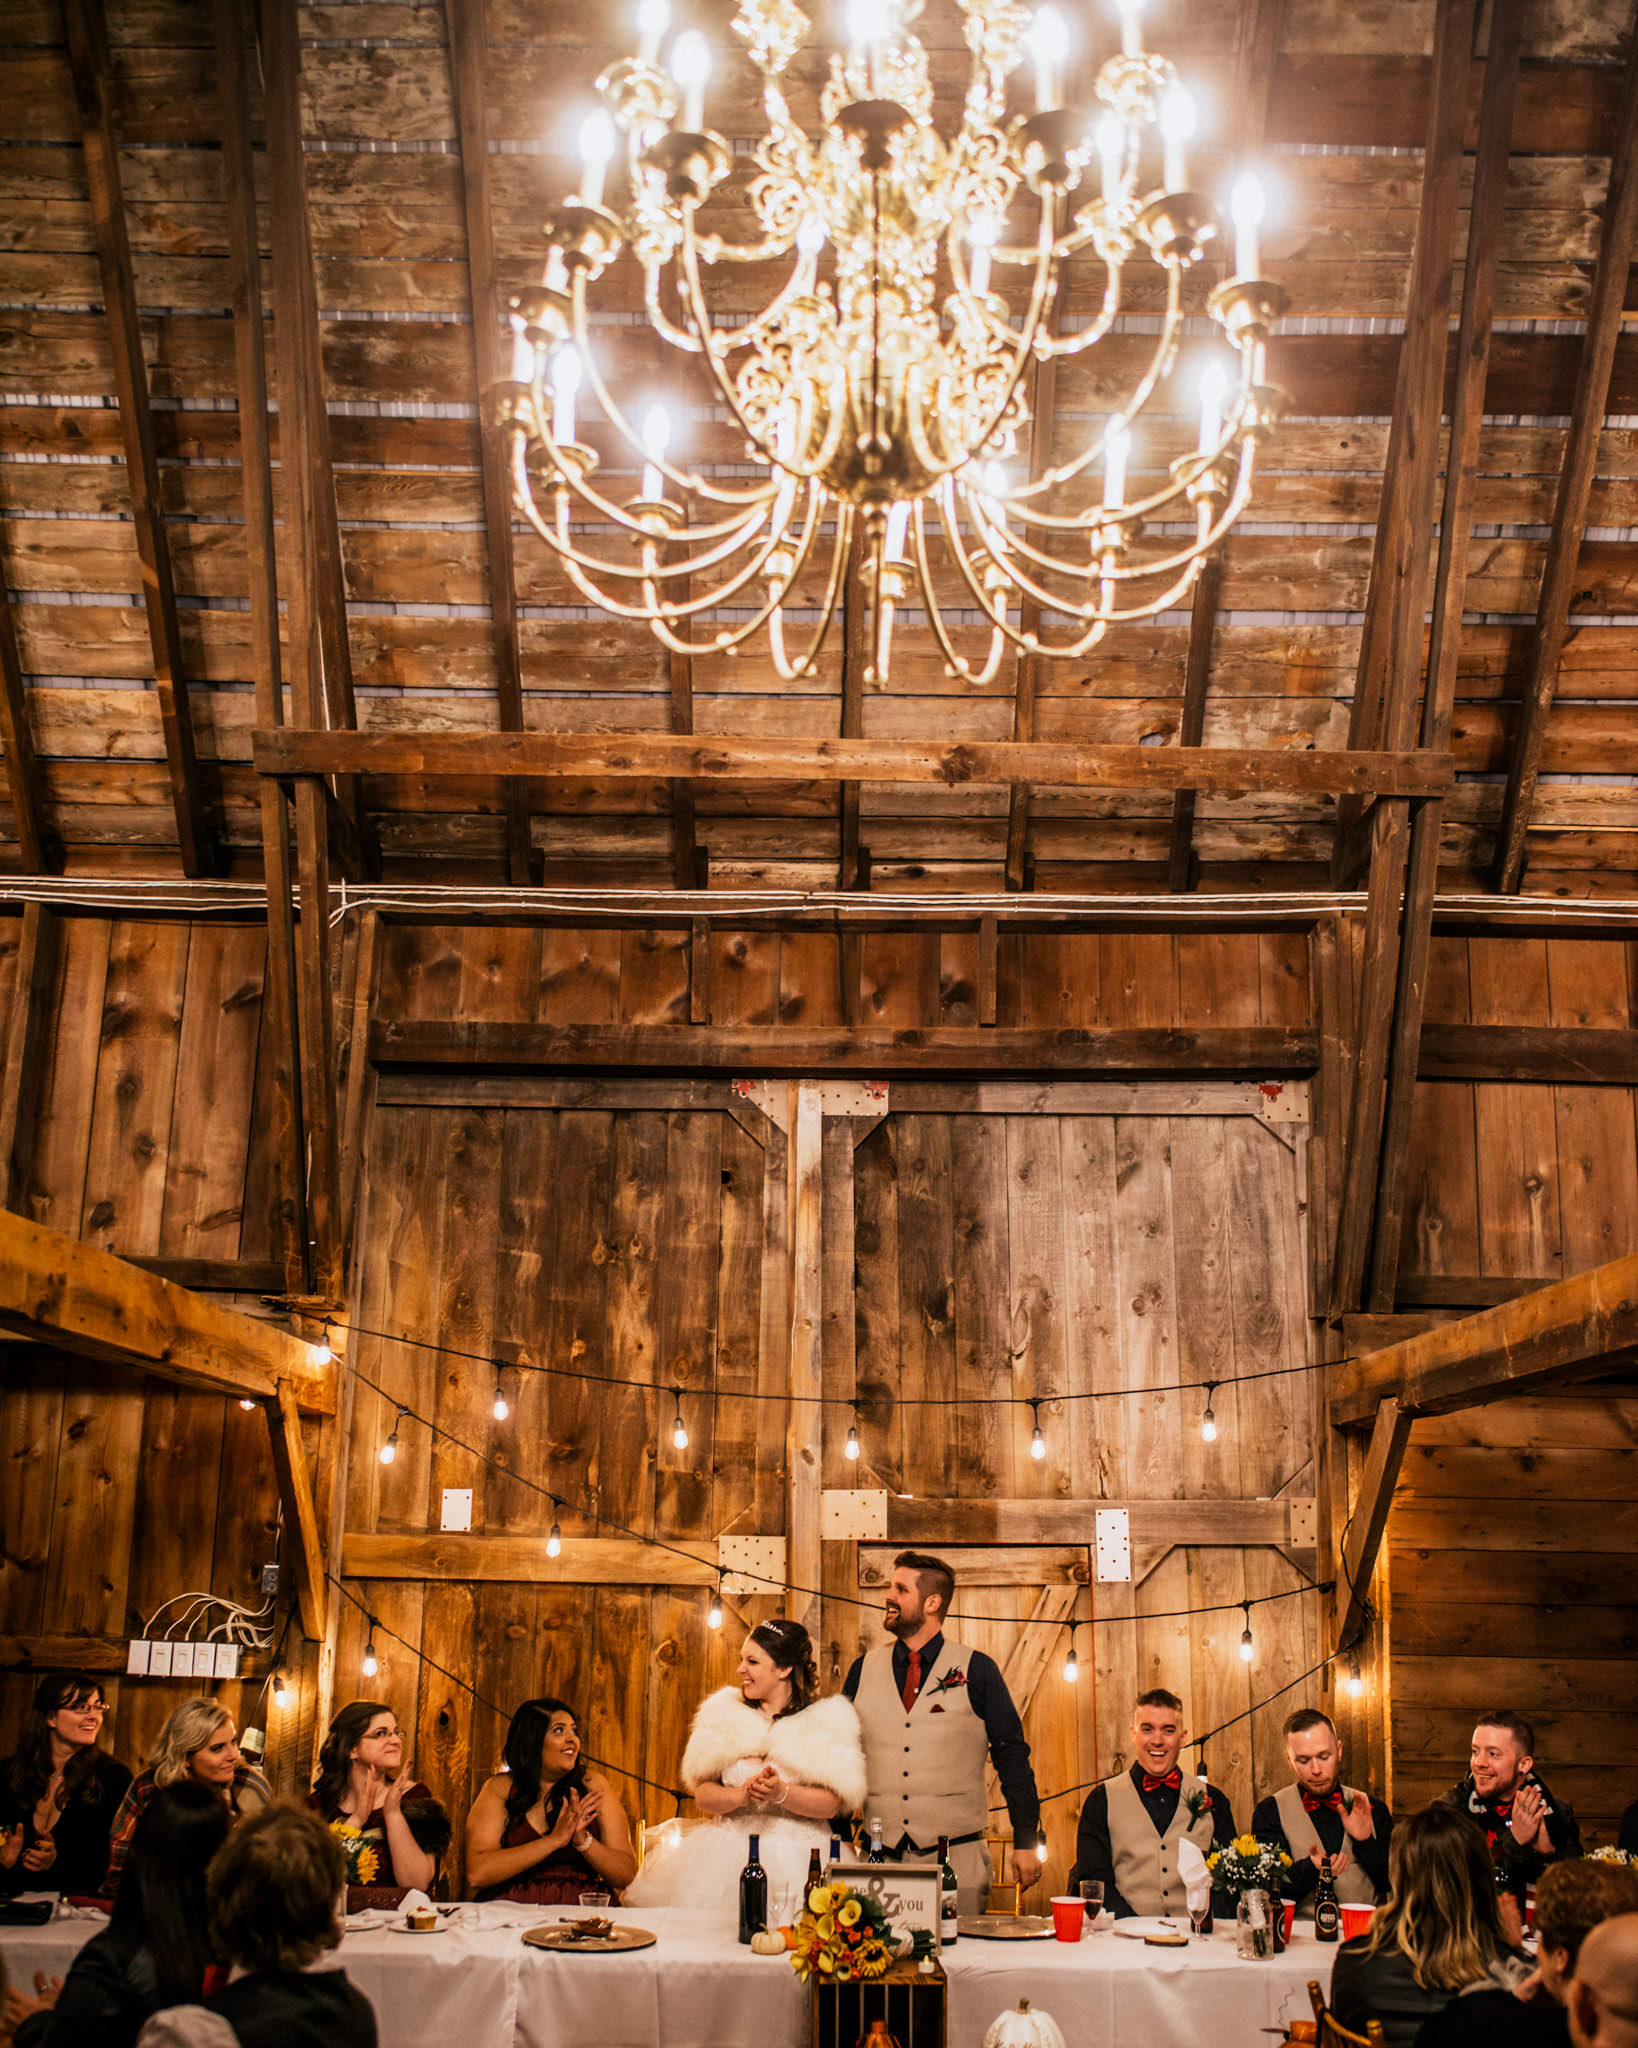 cranberry-creek-barn-wedding-001.jpg